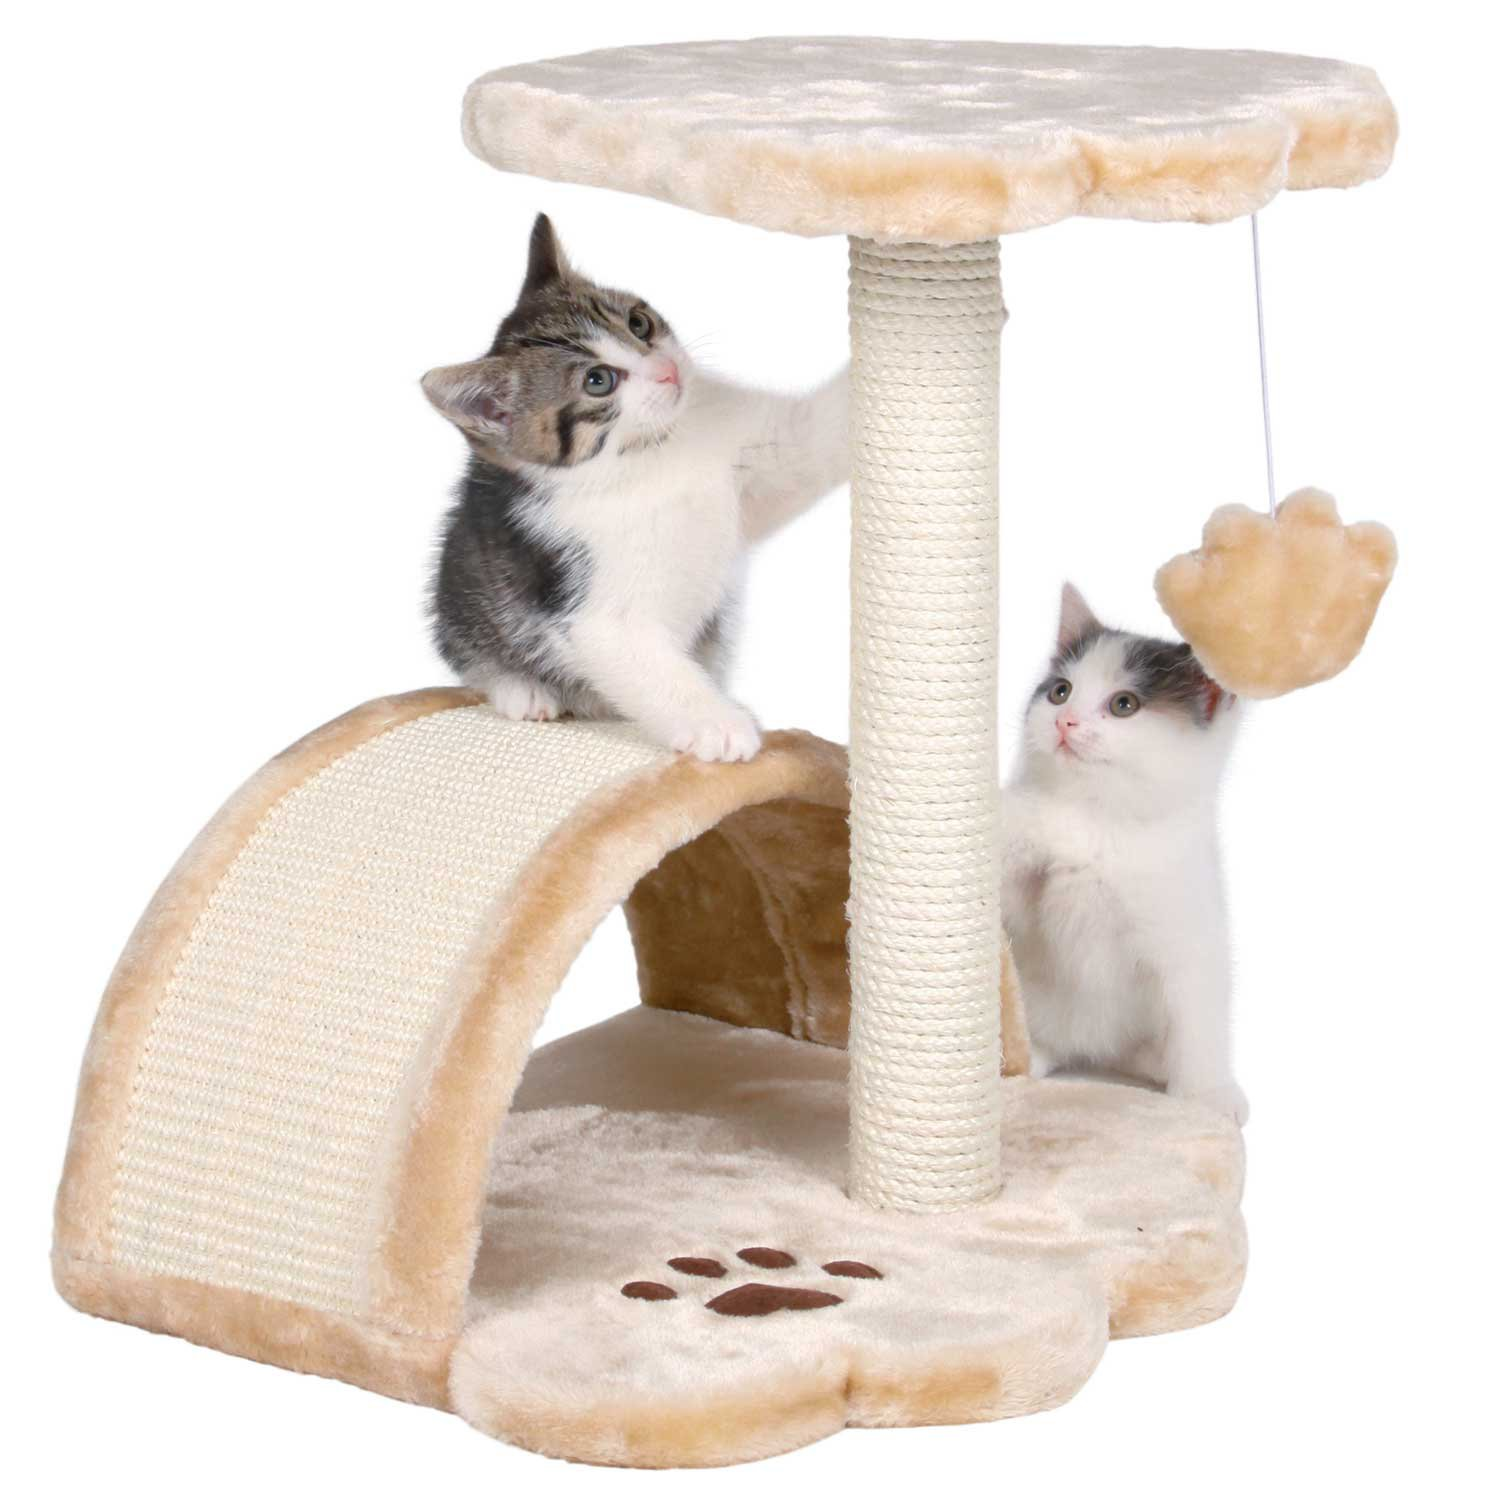 Trixie DreamWorld Vitoria Kitten Scratching Tower | Petco | Tuggl